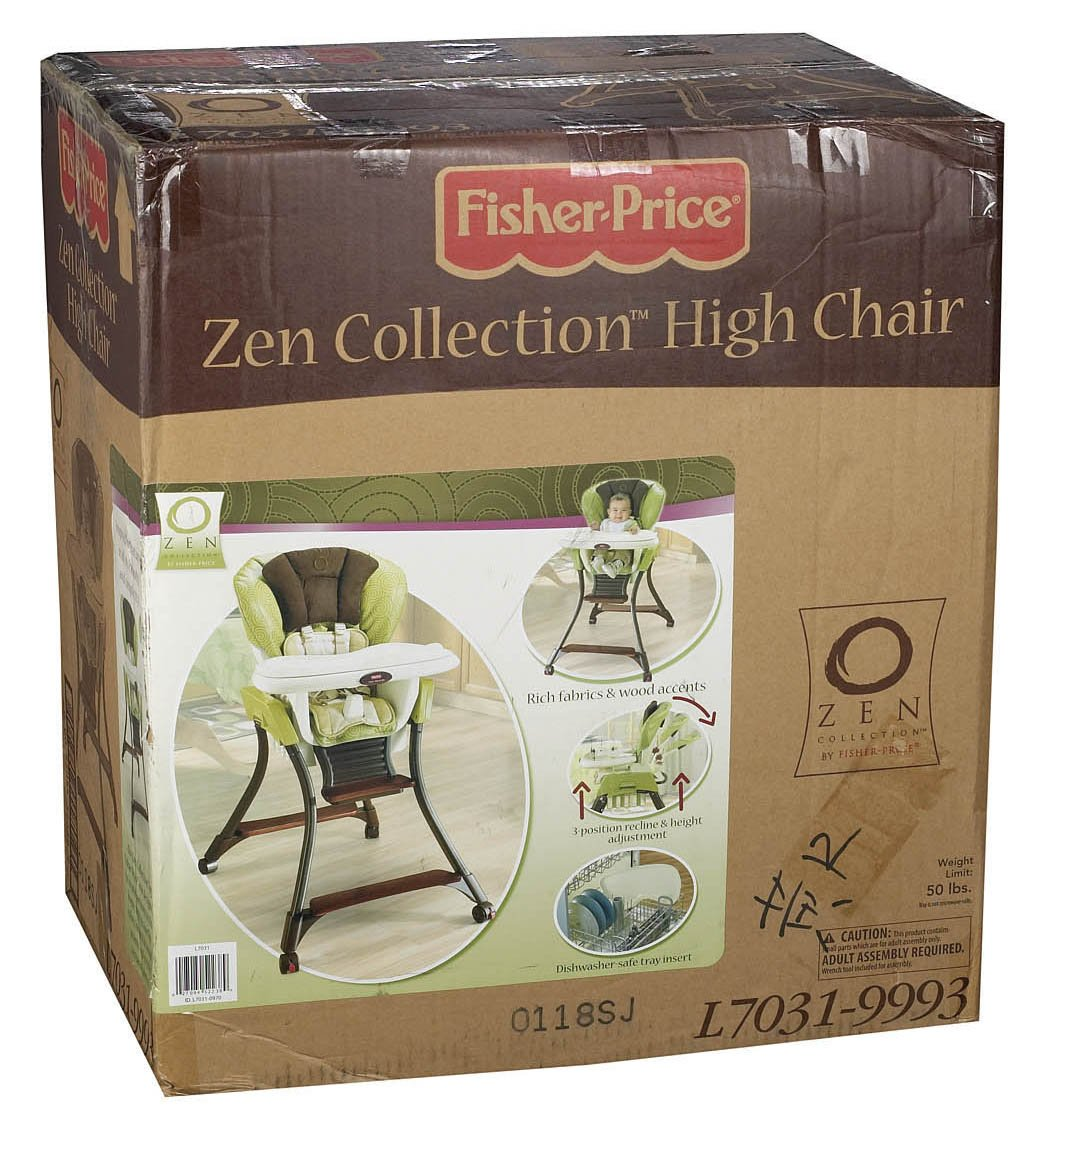 Ebebek gear travel high chair portable high chair 0 review - Amazon Com Fisher Price Zen Collection High Chair Childrens Highchairs Baby